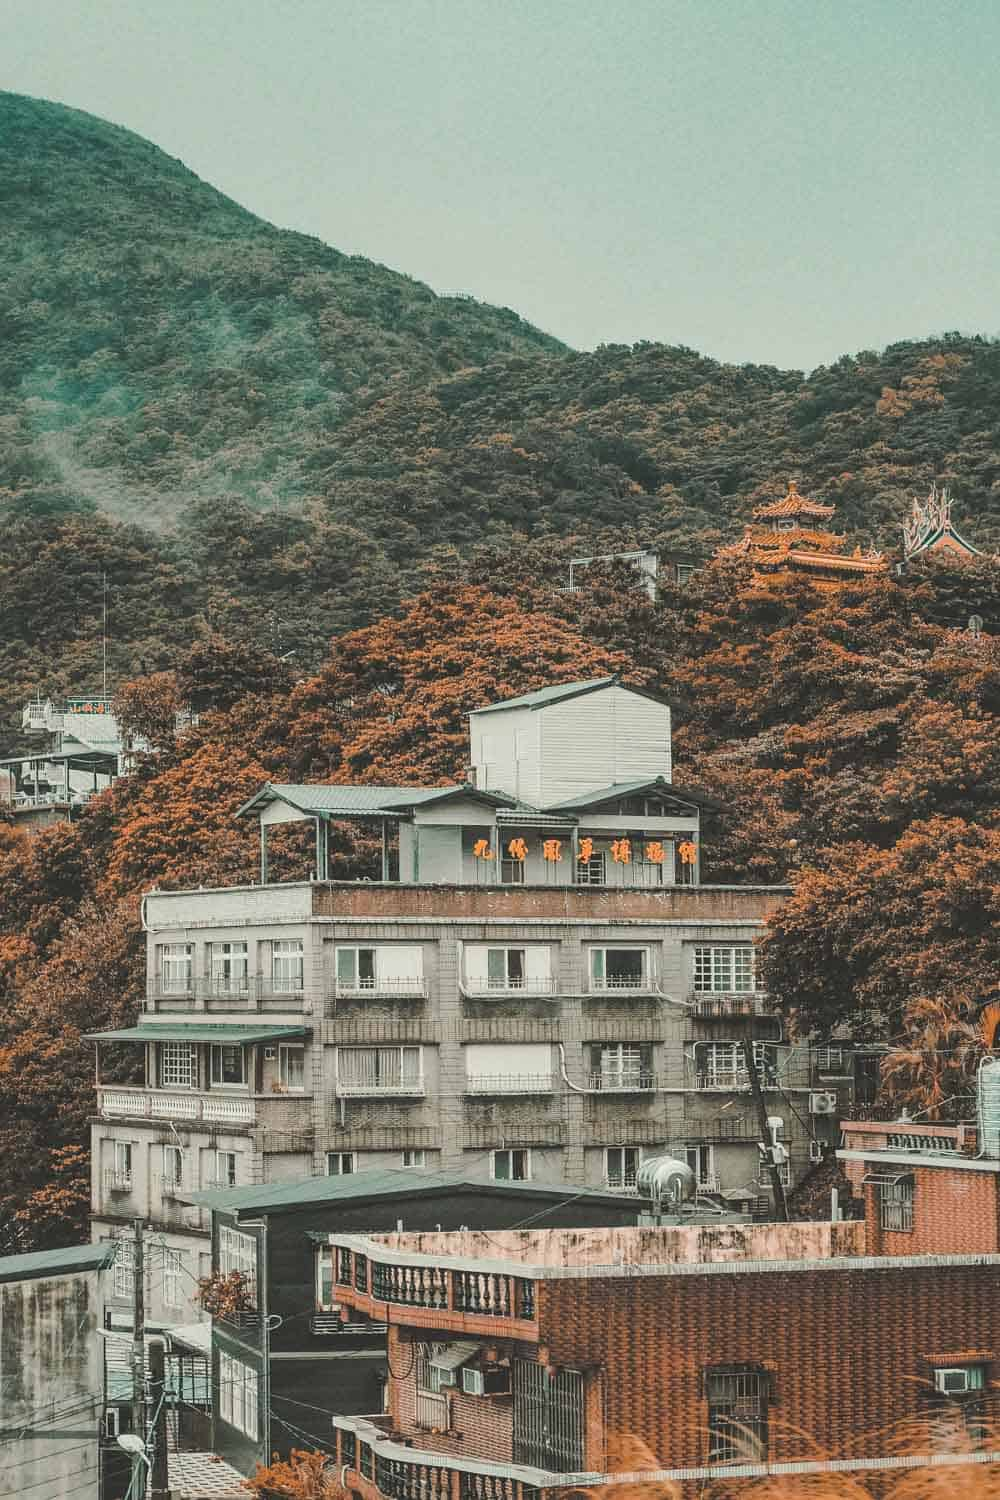 Jiufen hillside homes